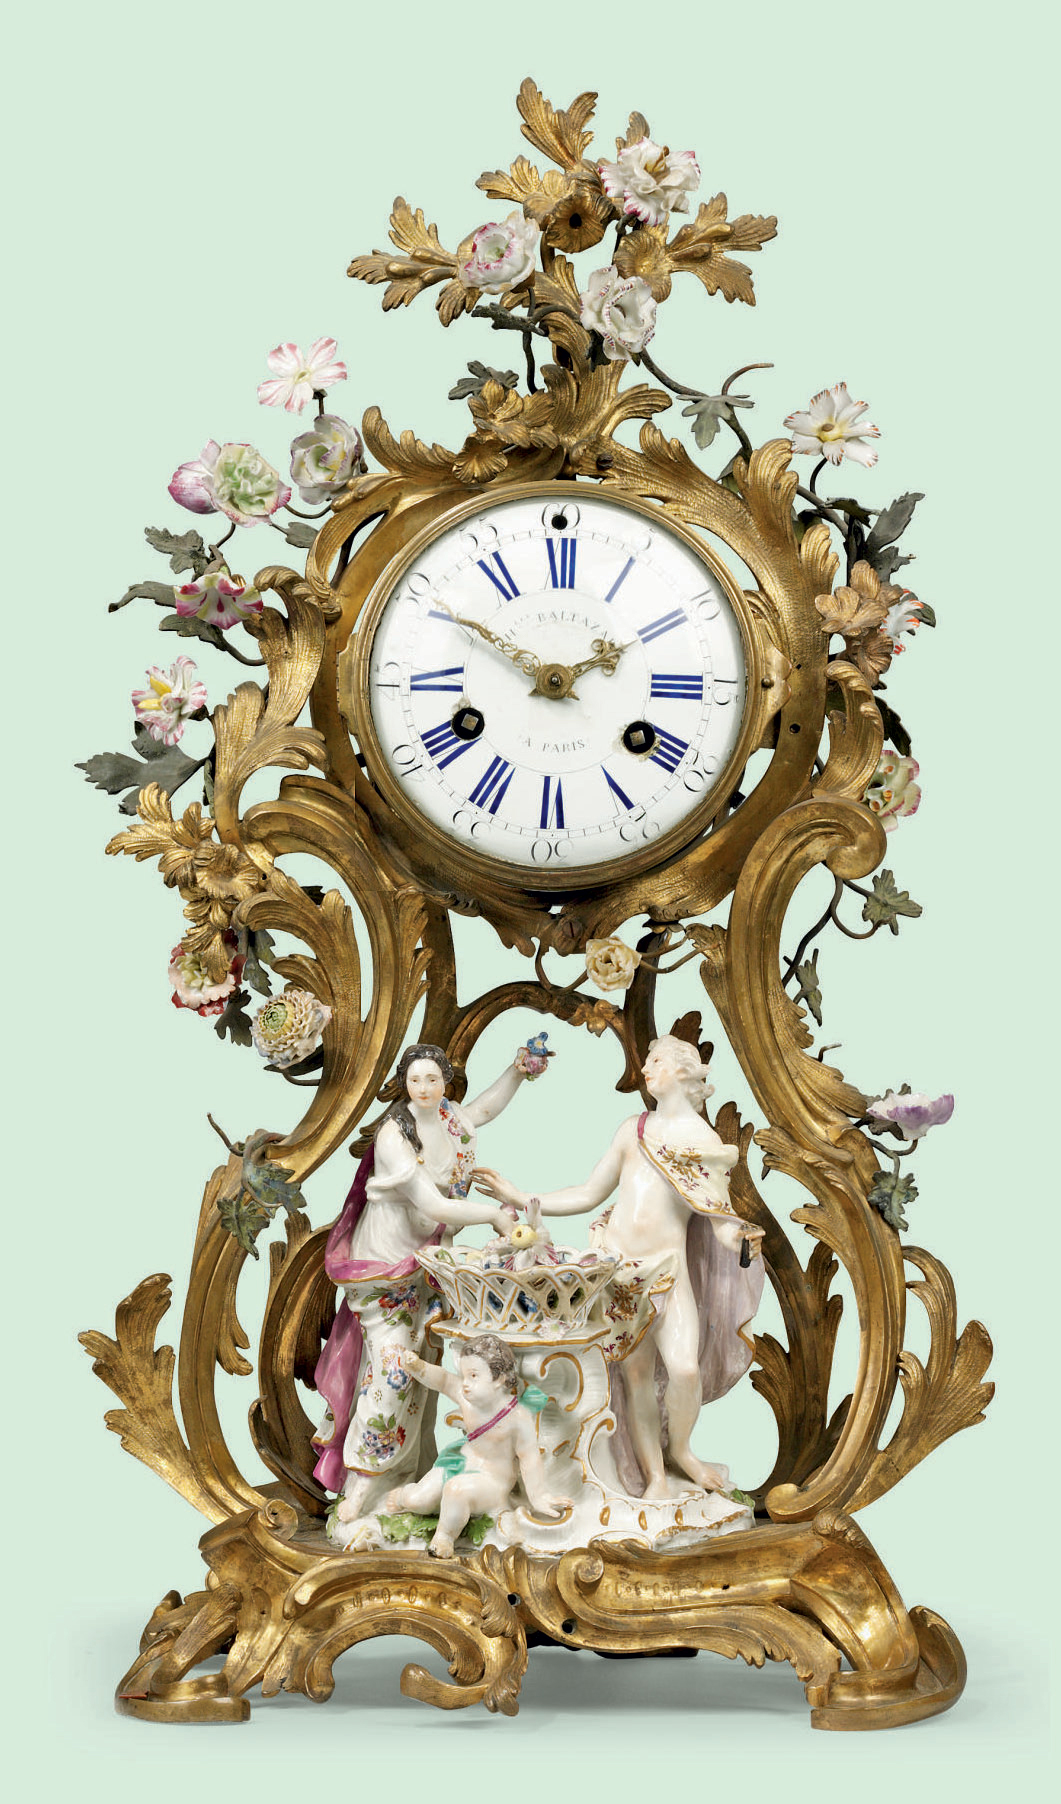 A LOUIS XV ORMOLU-MOUNTED MEISSEN PORCELAIN MANTEL CLOCK